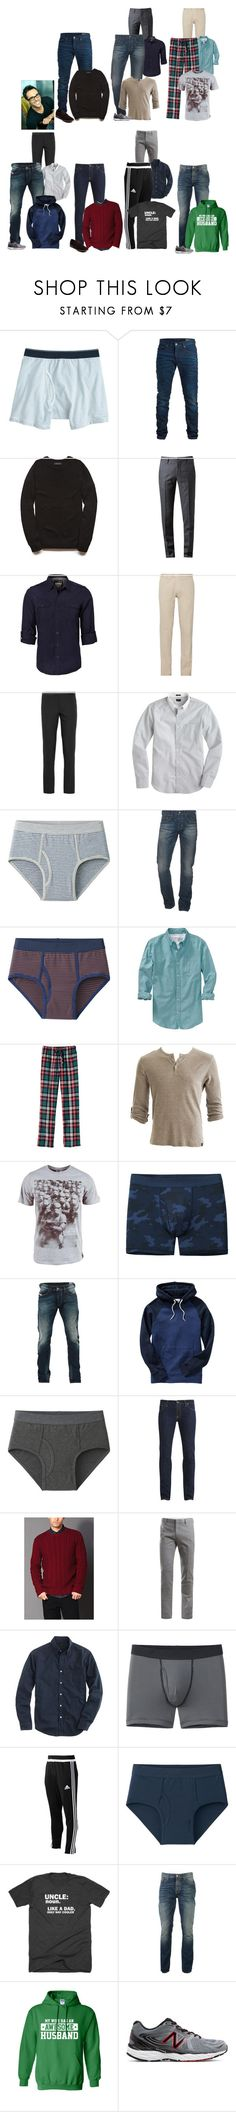 """""""Joe This Week"""" by thesummitfam ❤ liked on Polyvore featuring J.Crew, SELECTED, 21 Men, Browns, Brioni, Gucci, Uniqlo, AG Adriano Goldschmied, Old Navy and Crafted"""